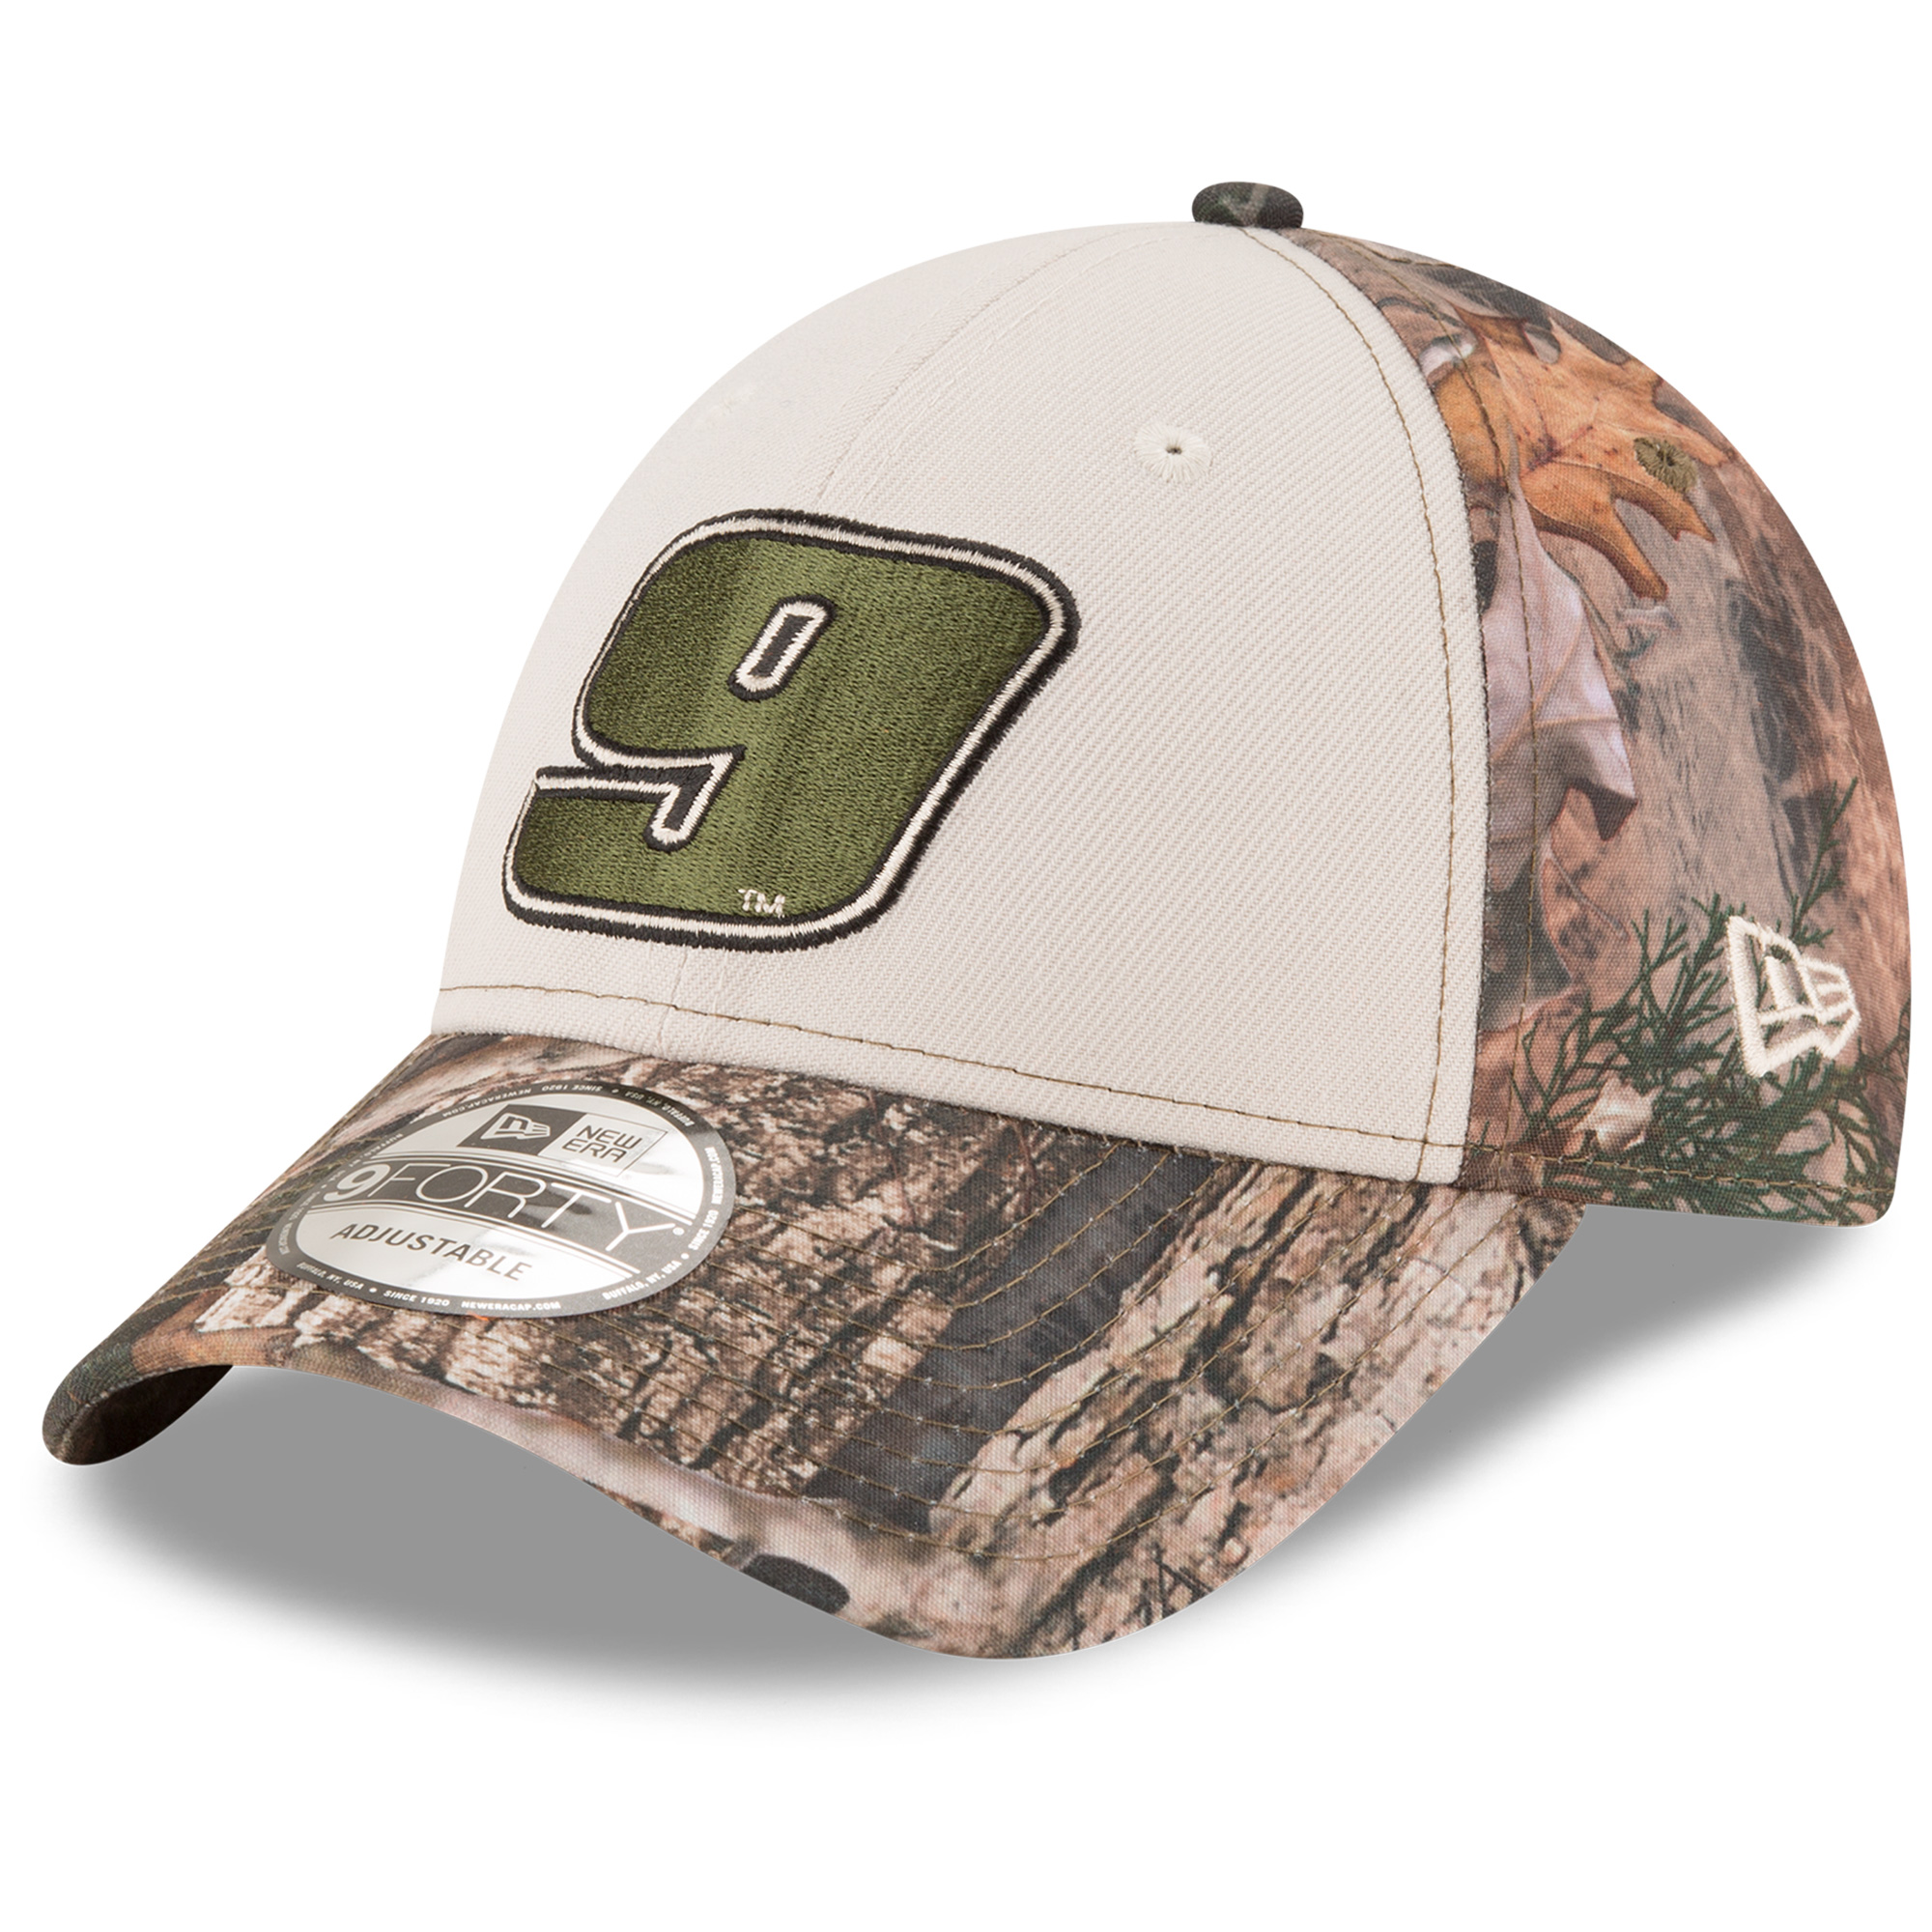 Chase Elliott New Era Stone Front 9FORTY Adjustable Hat - Camo/White - OSFA